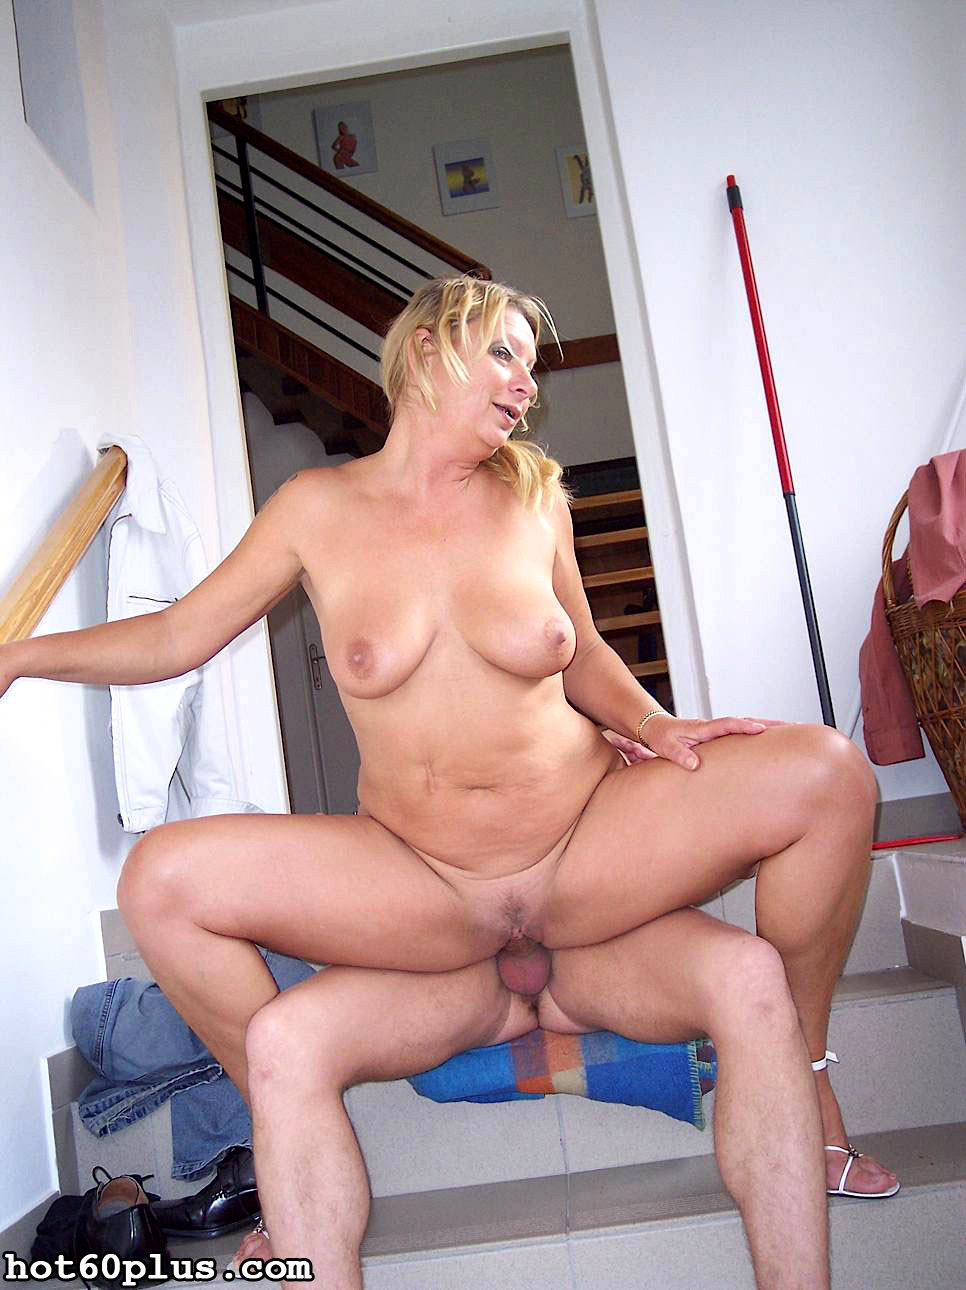 Naughty naked housewives